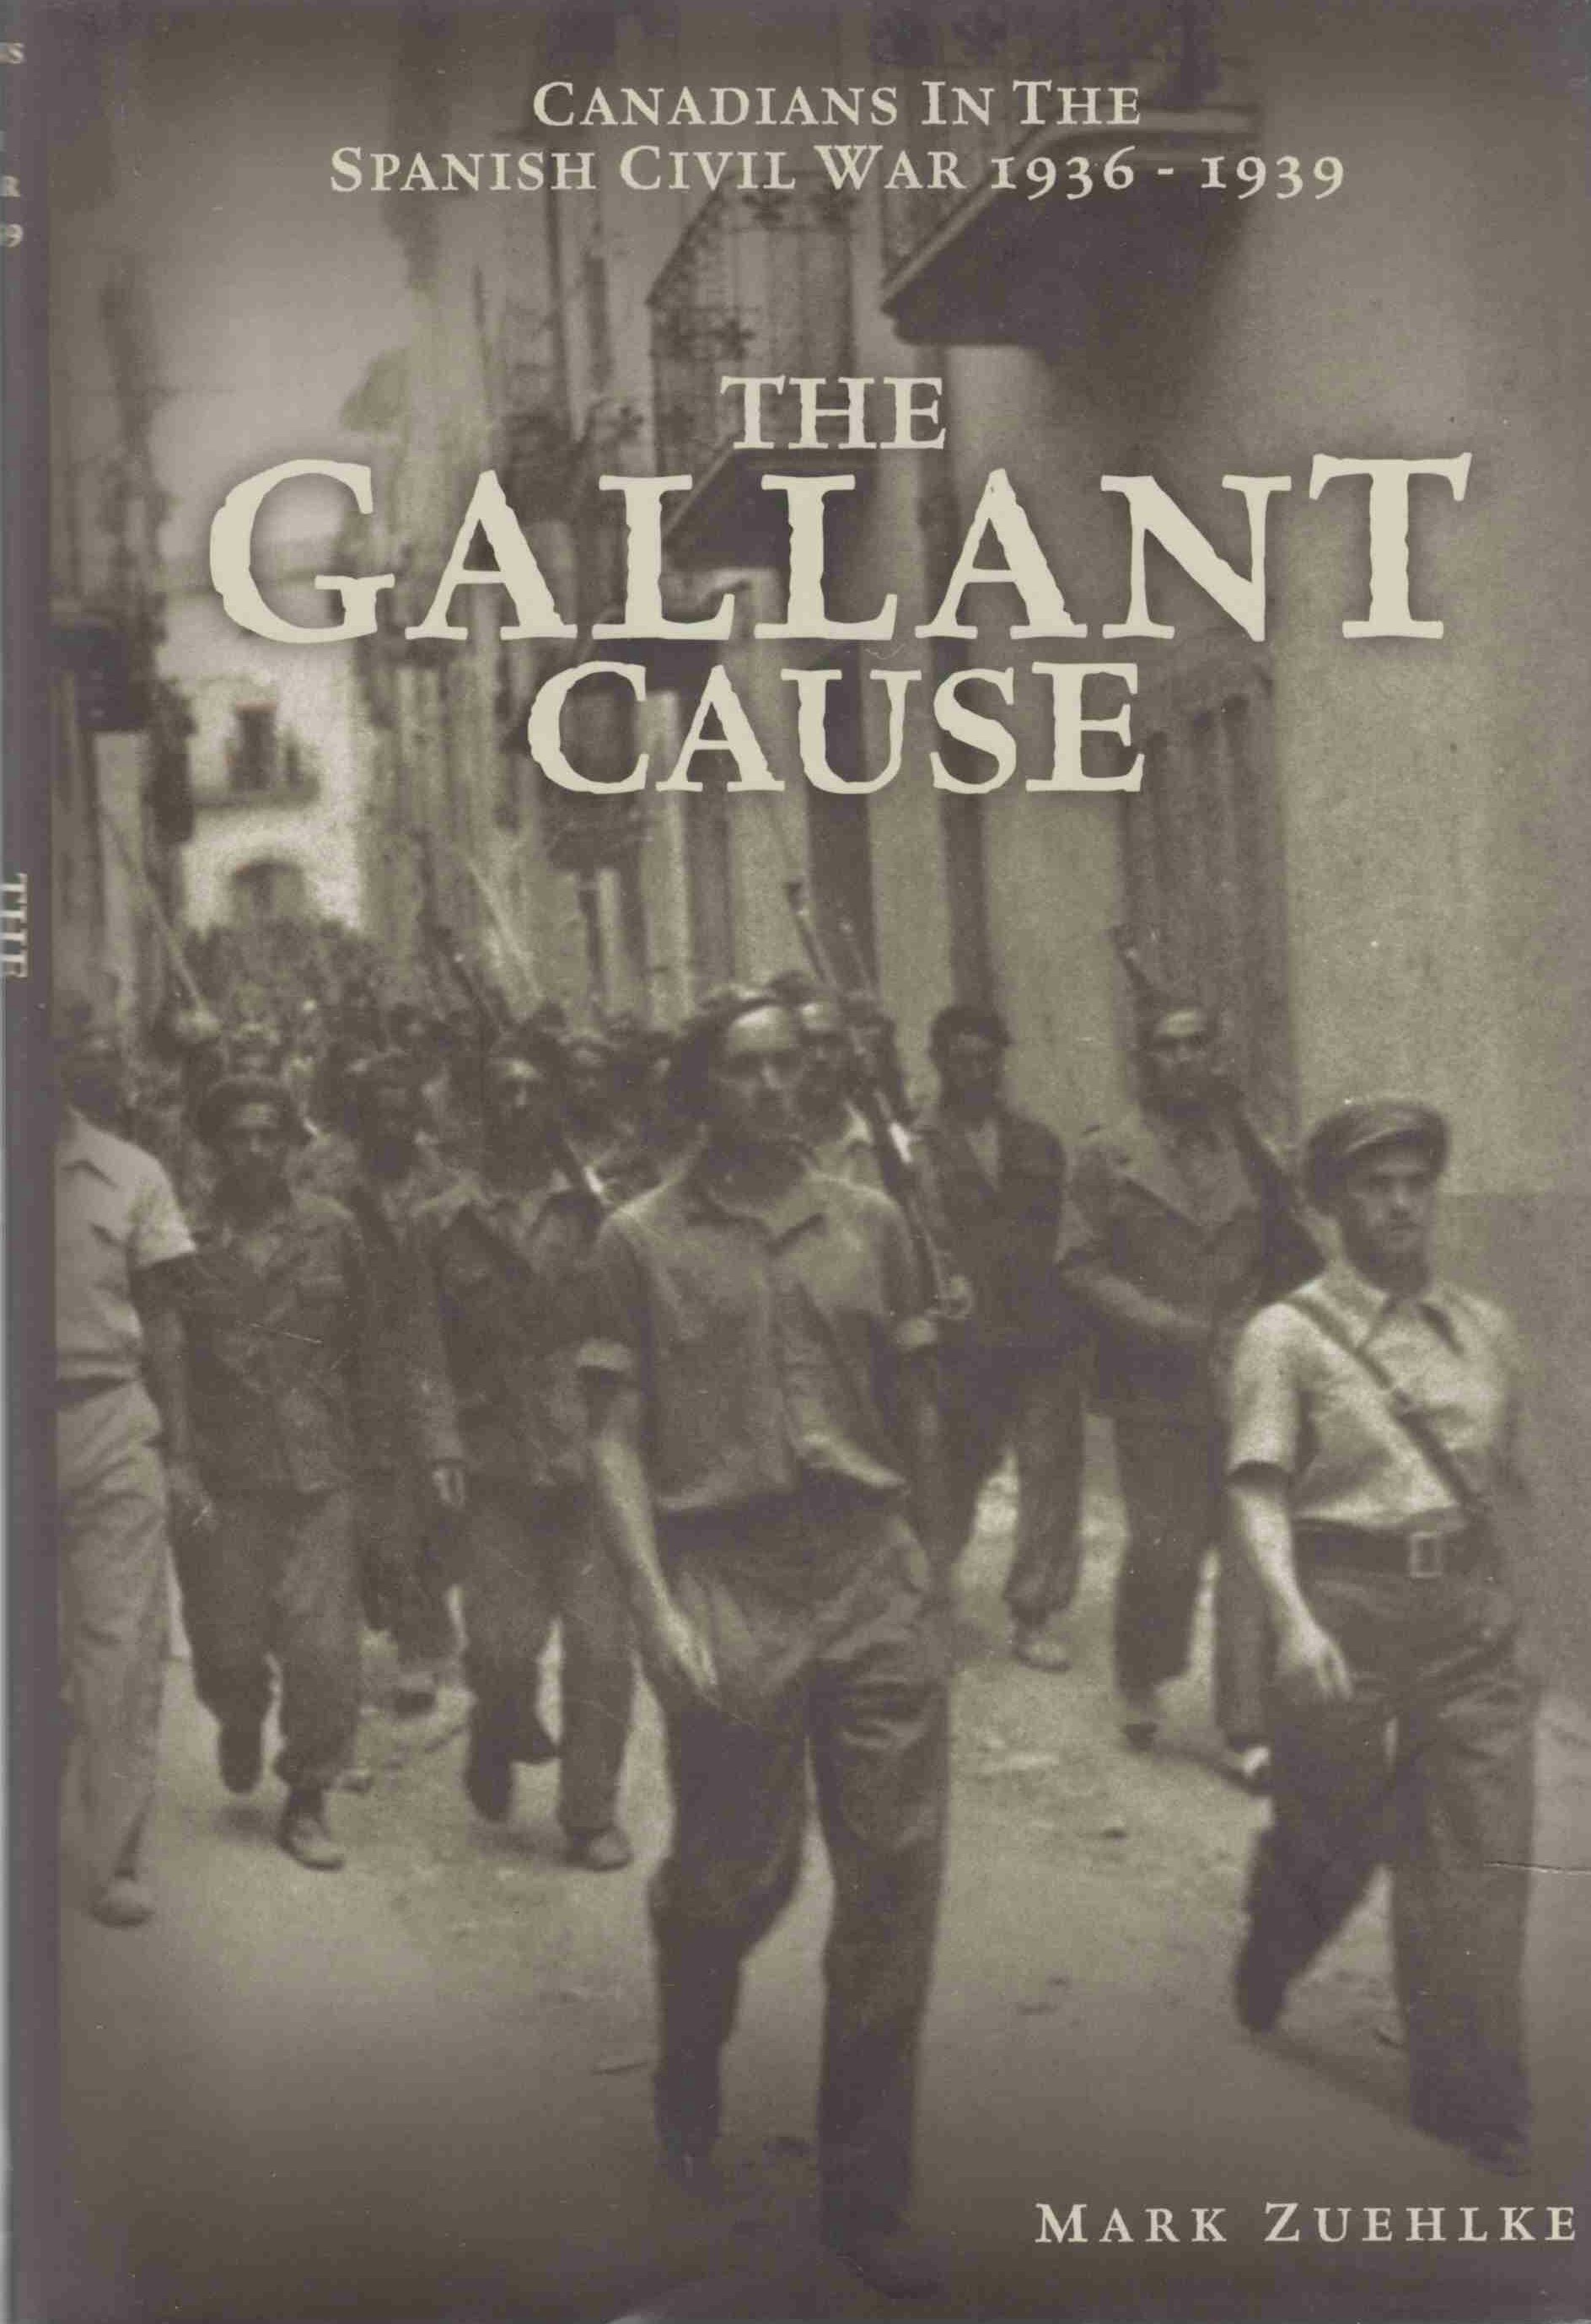 The Gallant Cause, Mark Zuehlke